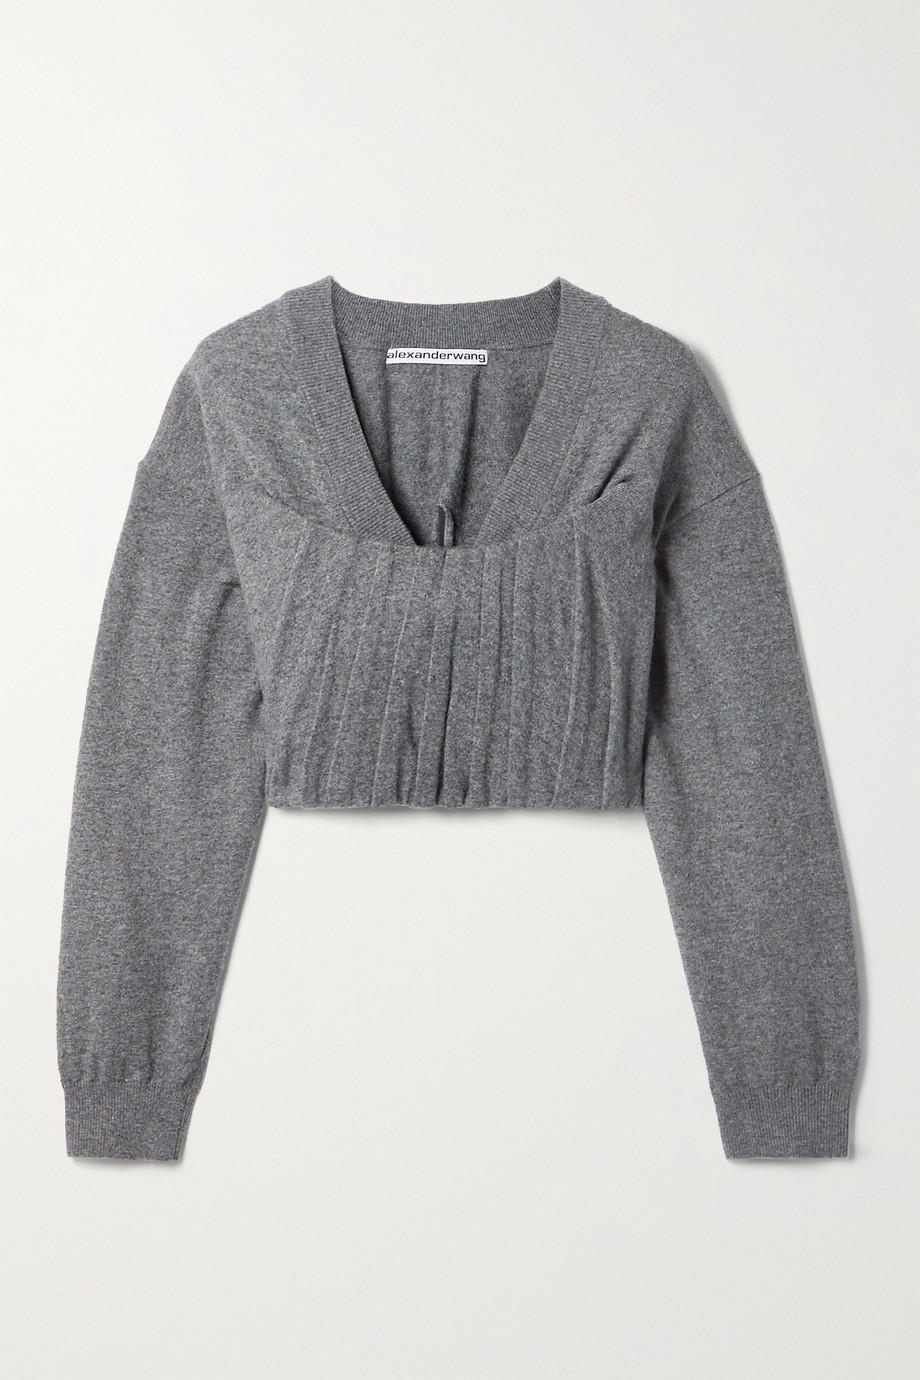 Alexander Wang Cropped pintucked knitted sweater